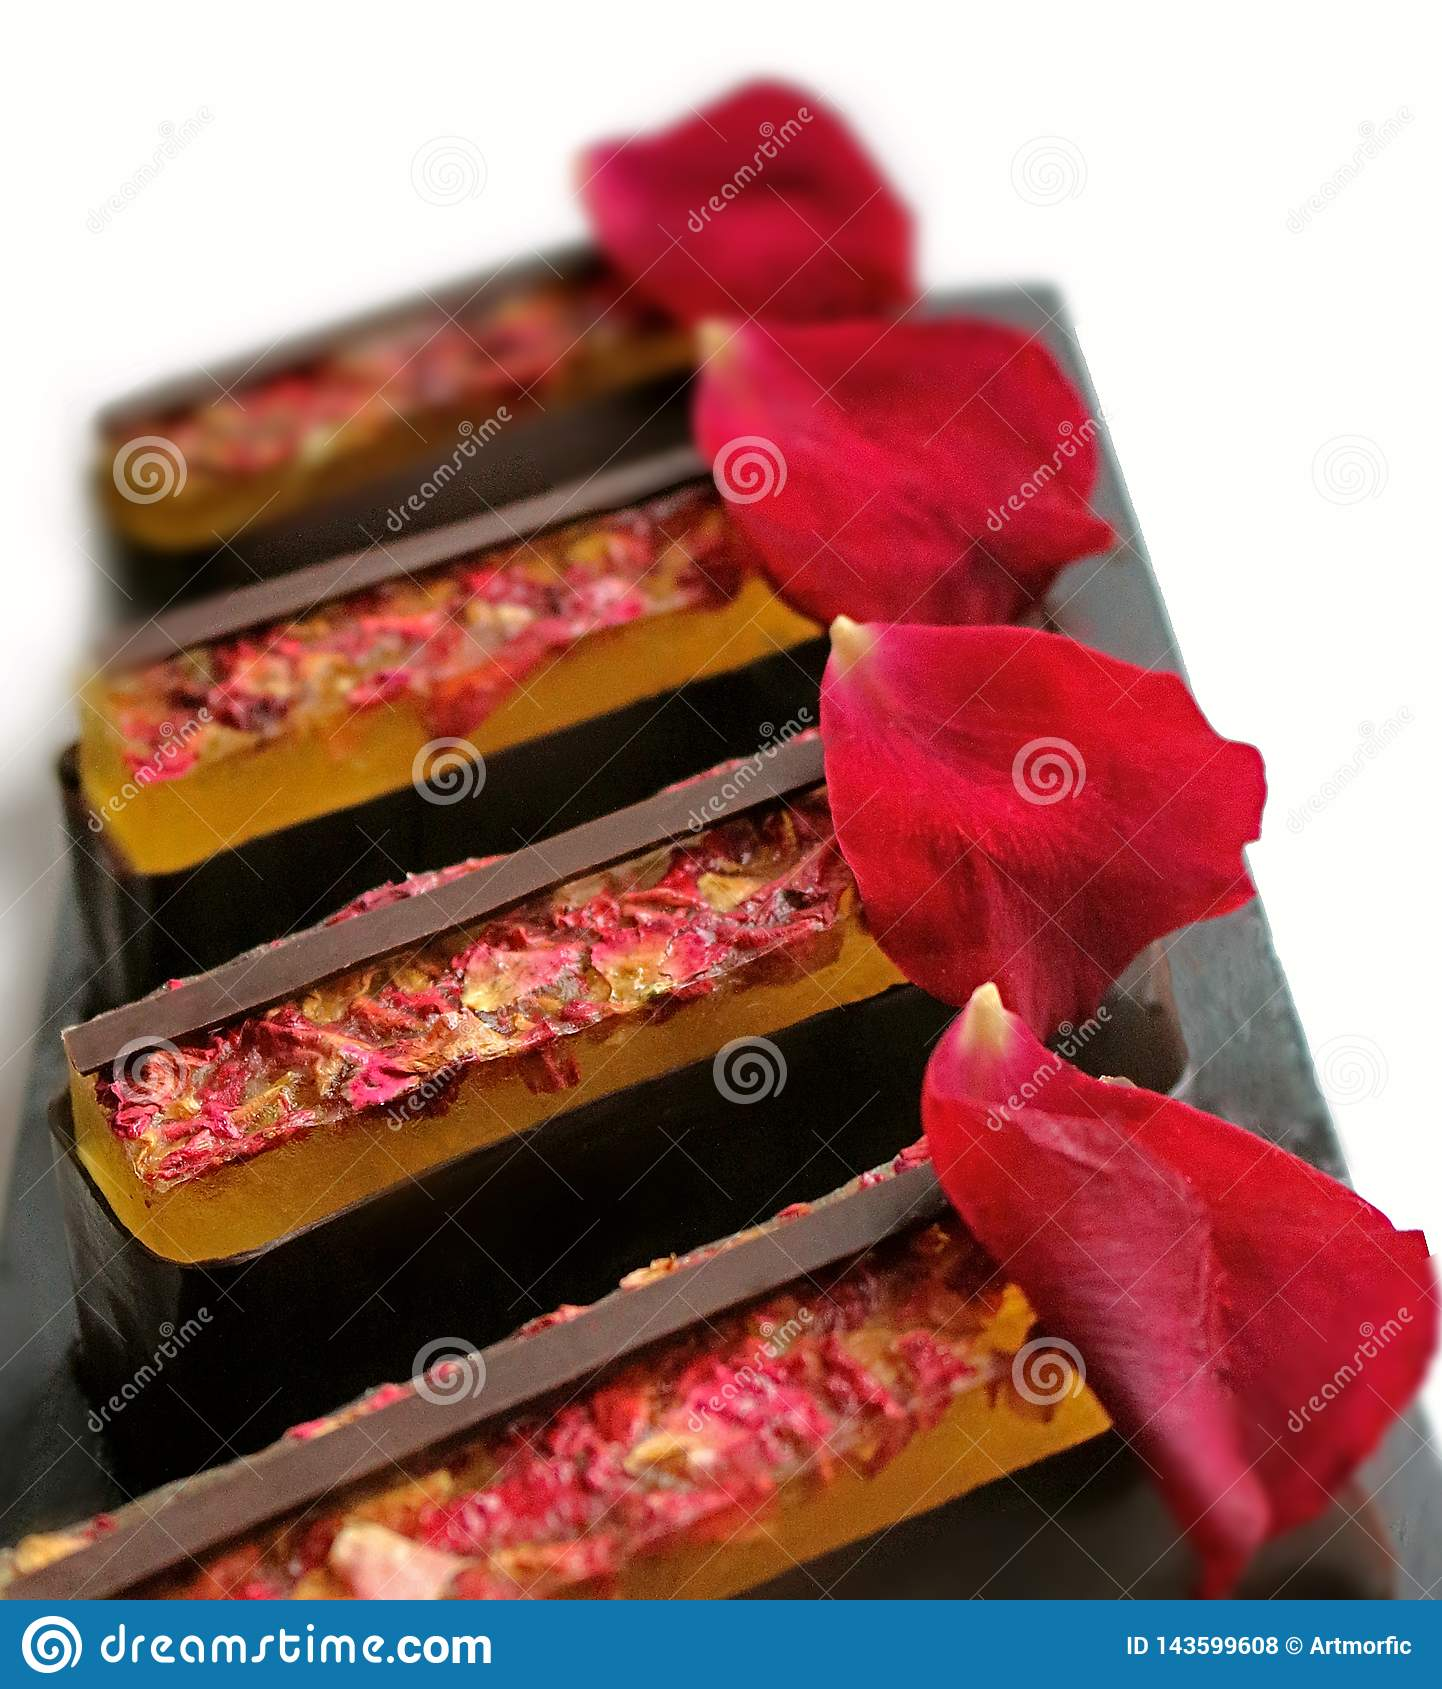 Lemon jelly and chocolate desserts with fresh edible rose petals